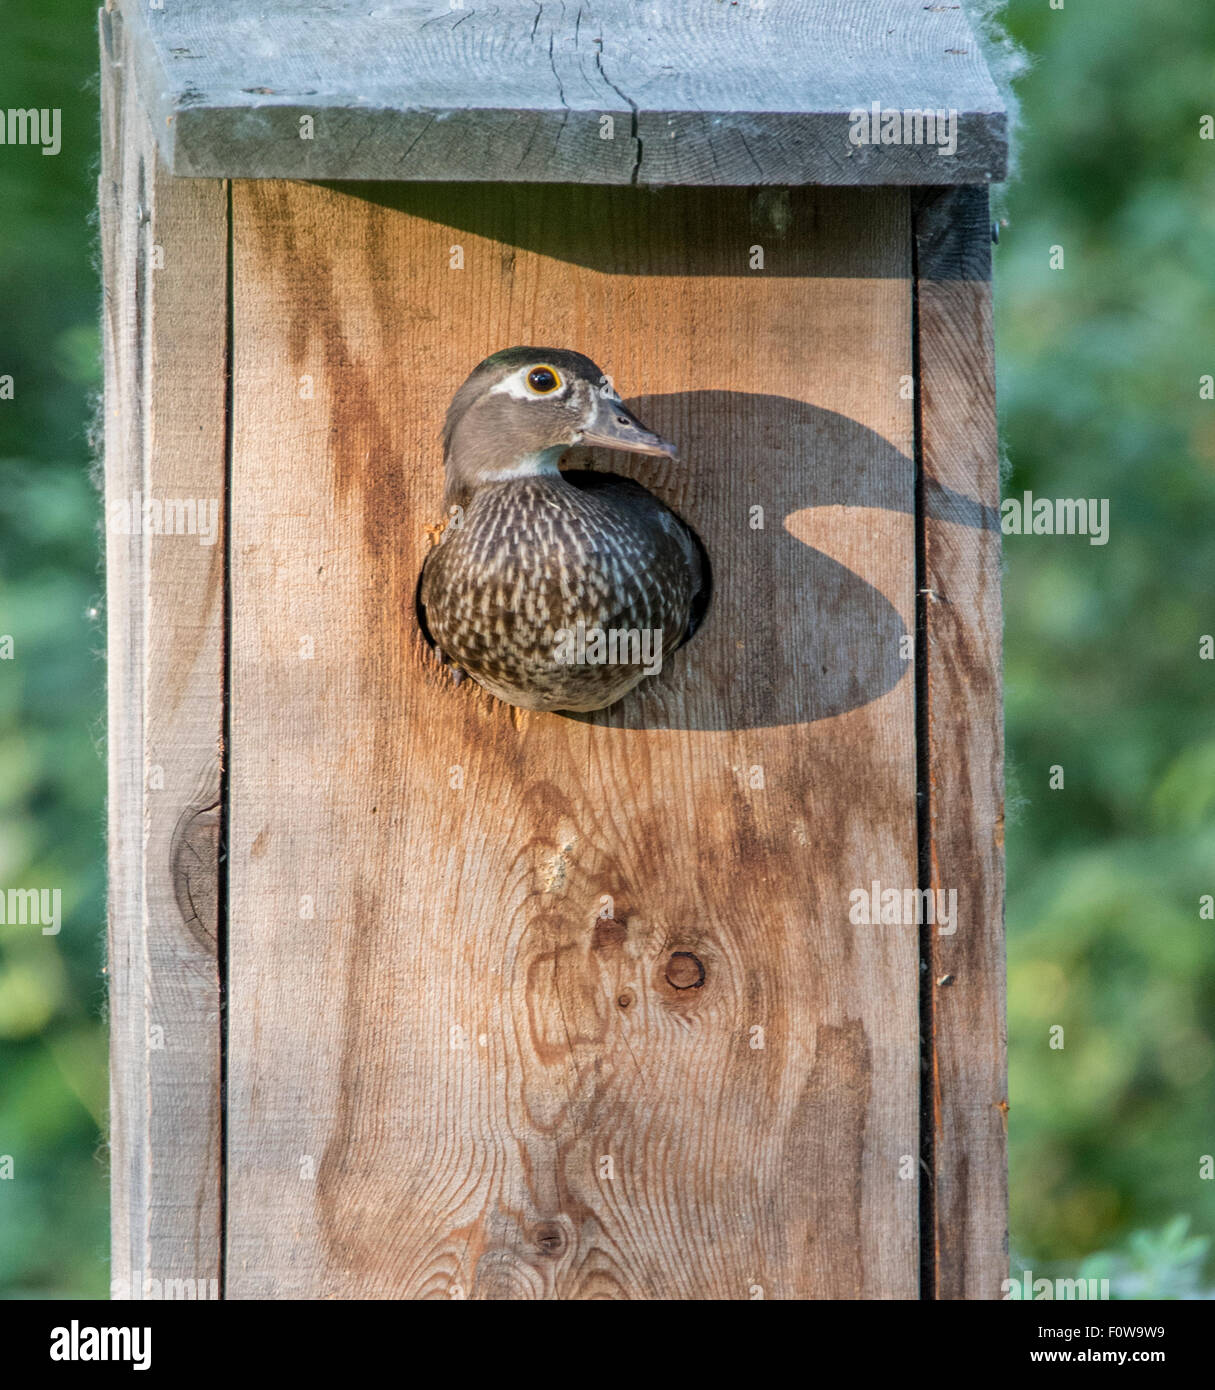 Wood duck nest box stock photos wood duck nest box stock images wildlife birds wood ducks female wood duck peaking out of her wood duck publicscrutiny Choice Image